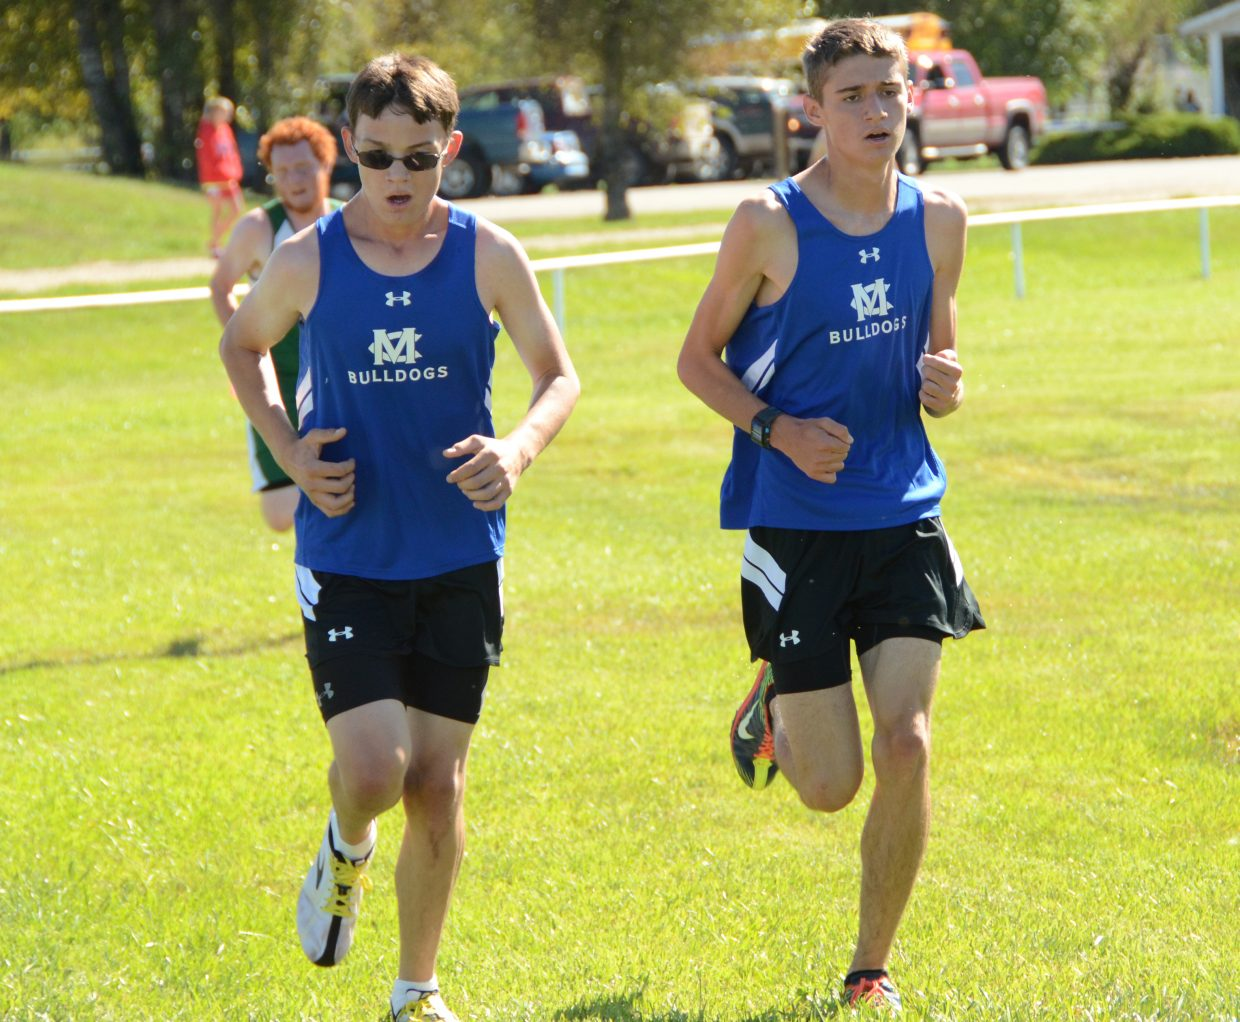 meet moffat county singles Milesplit pro to get the full depth of our meet coverage, become pro.